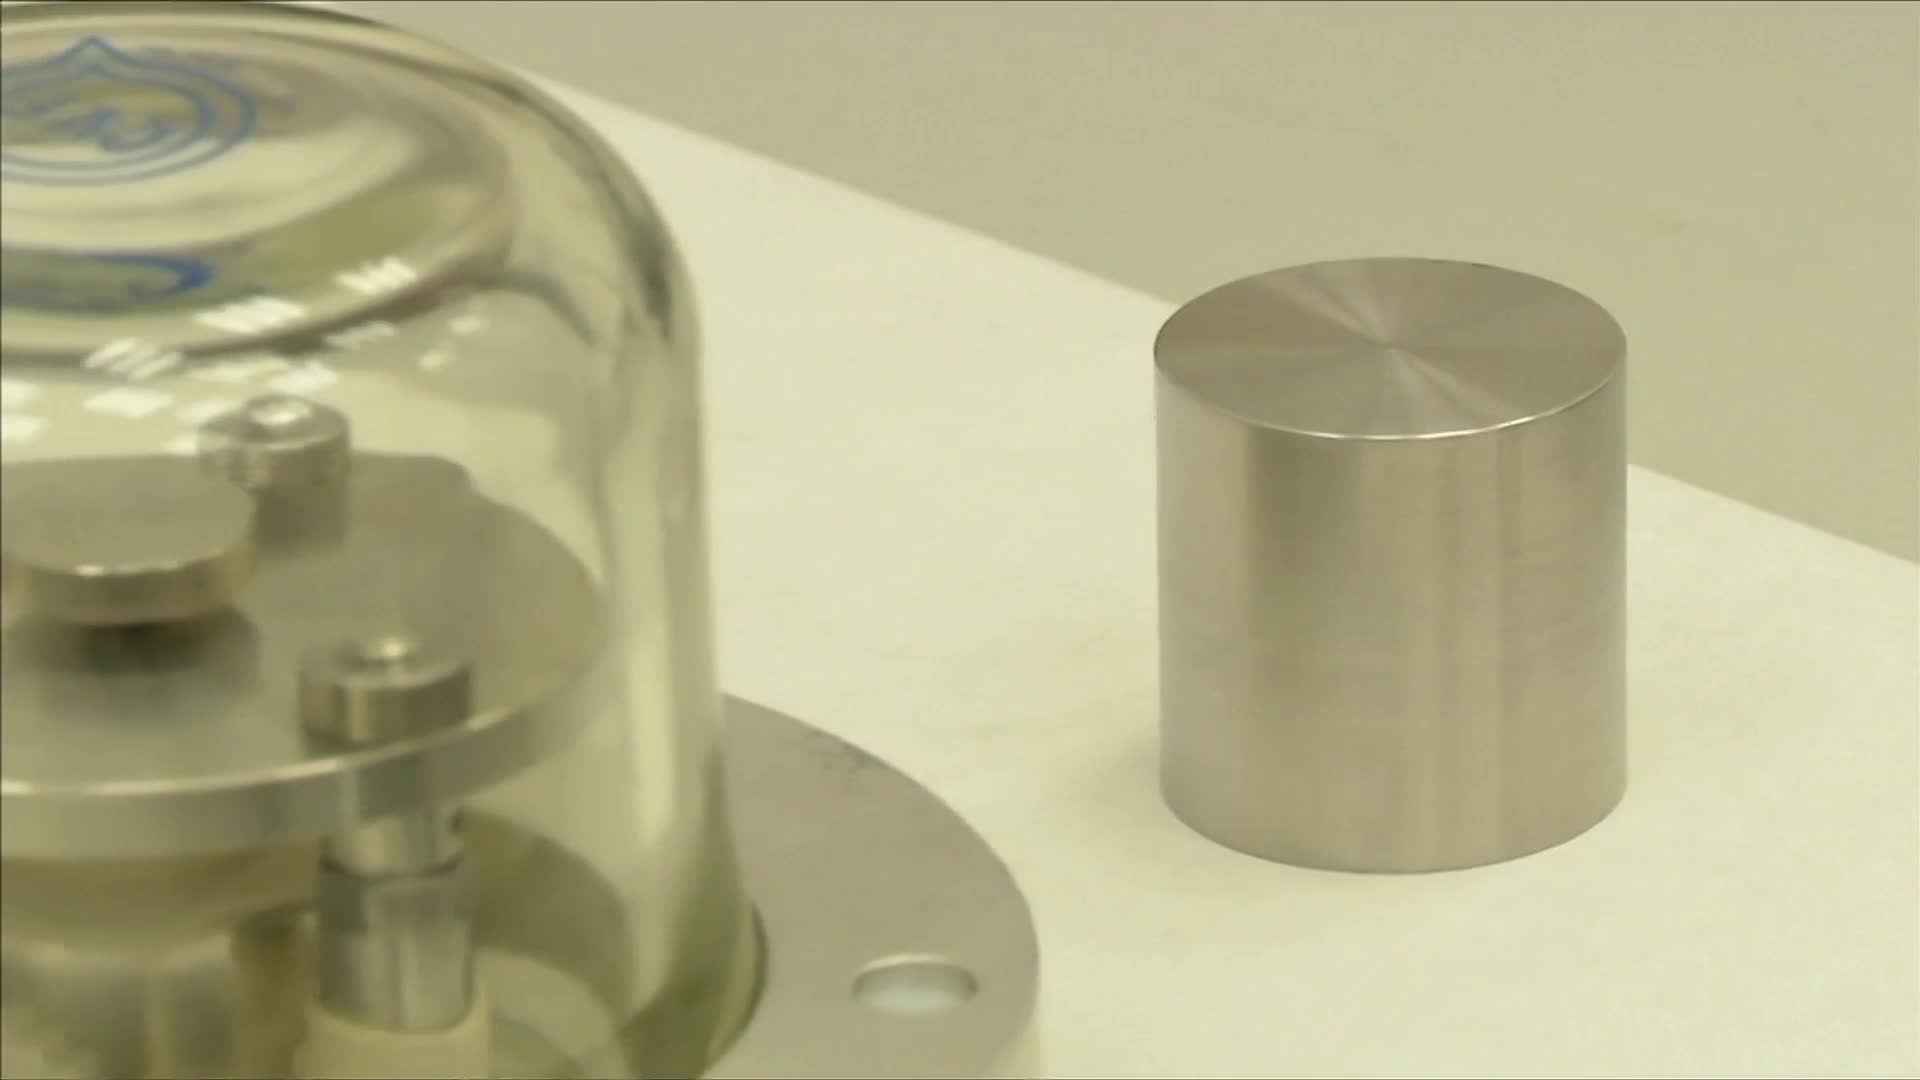 National News - Nations To Consider Changing Definition Of A Kilogram